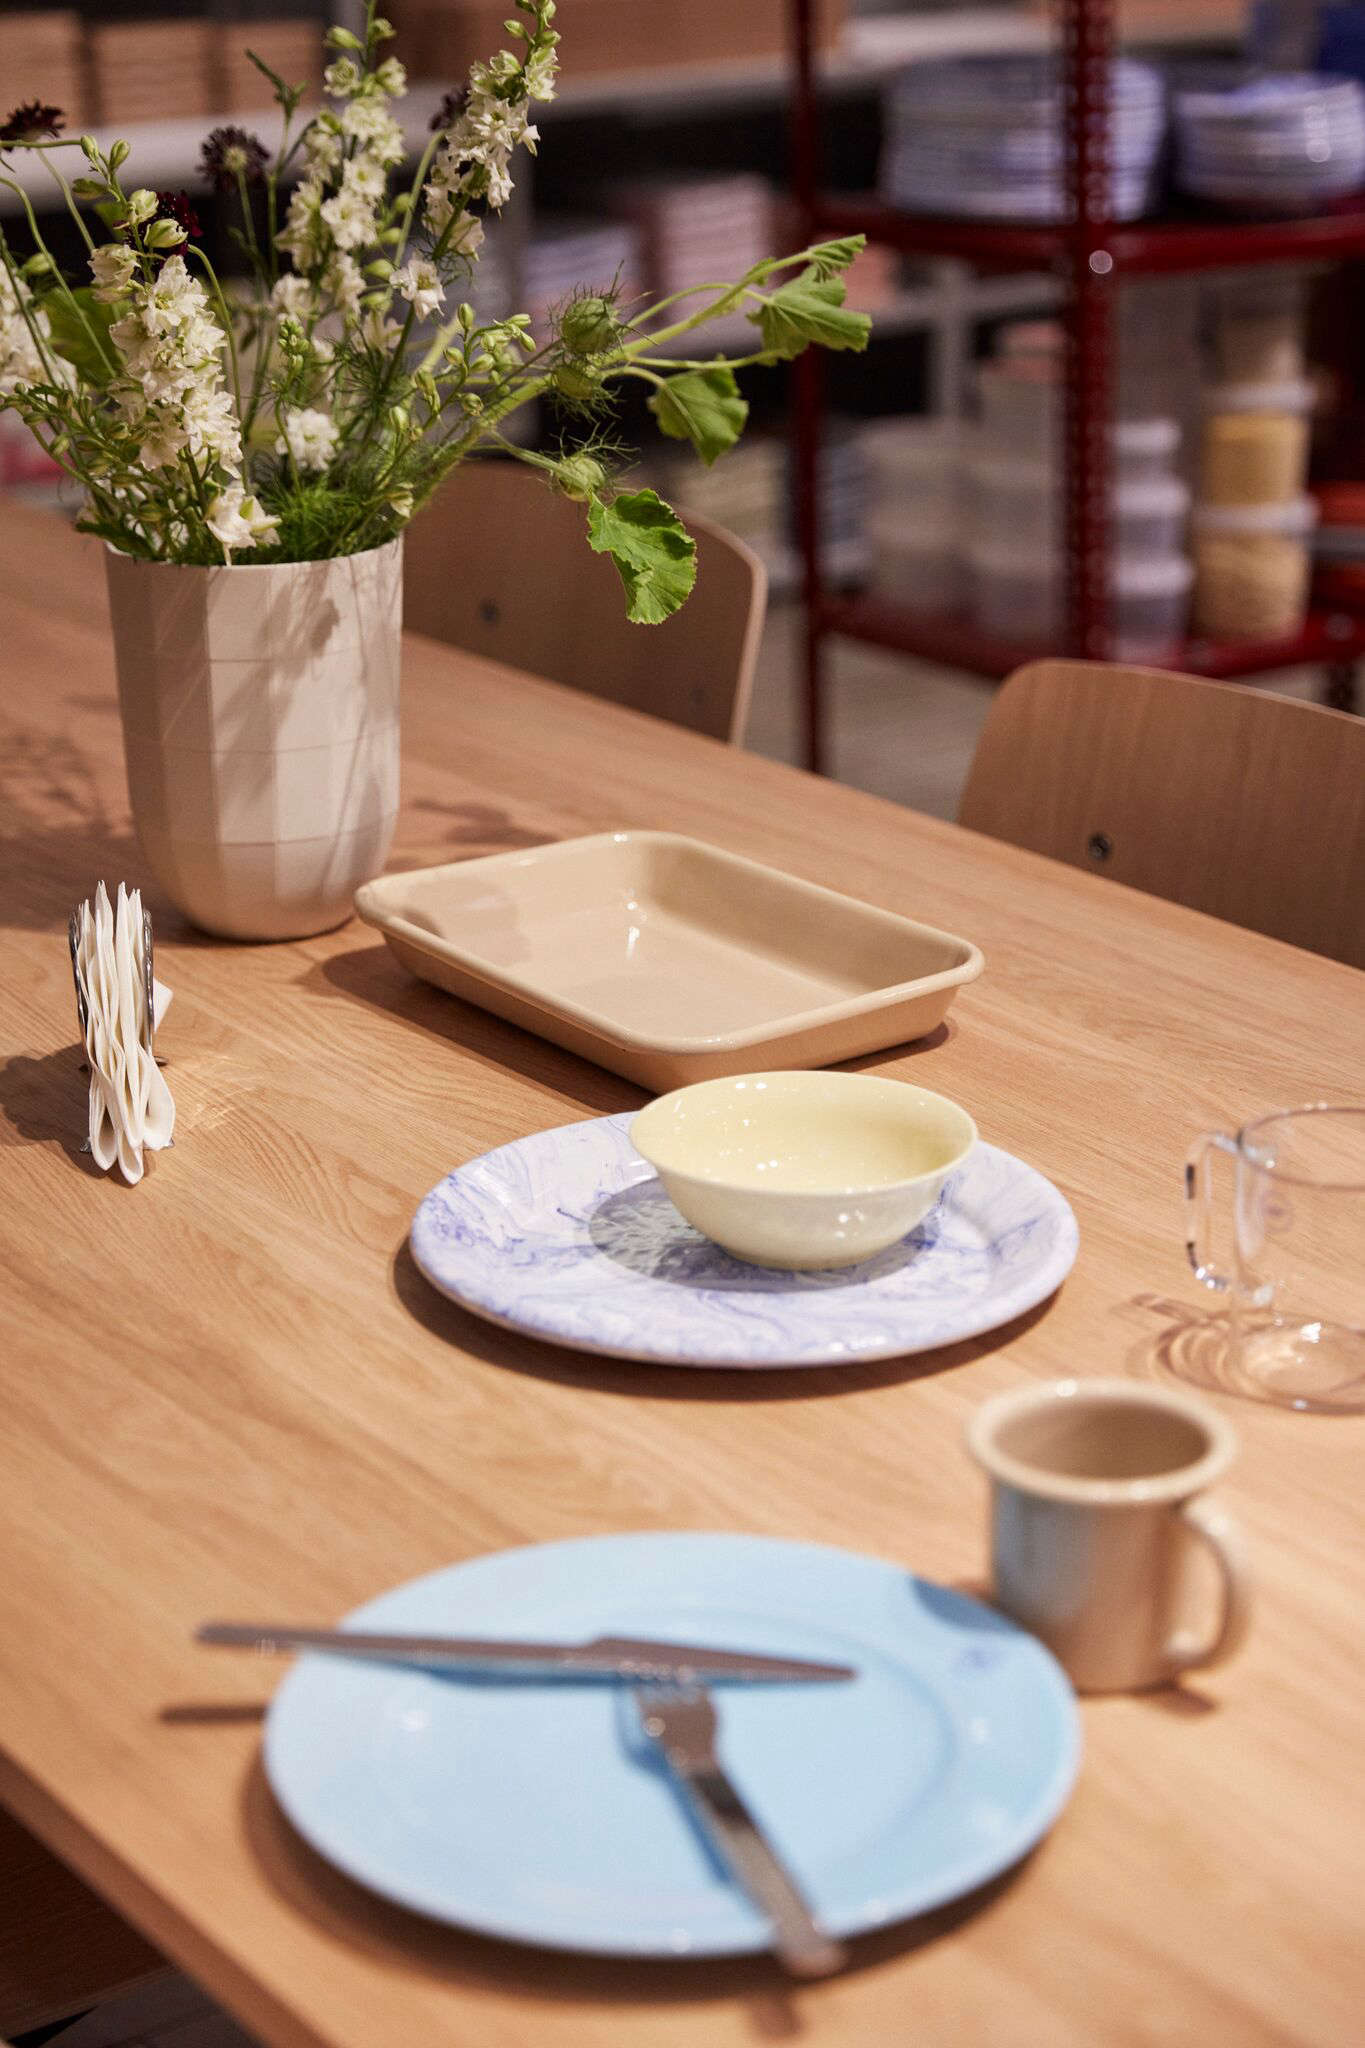 Alexa and Annie stopped by the launch of Hay Kitchen Market at the MoMA Design Store this week, Danish breakfast by Frederik Bille Brahe included. Stay tuned for a look at the full collection next week. Photograph courtesy of Hay Kitchen Market.